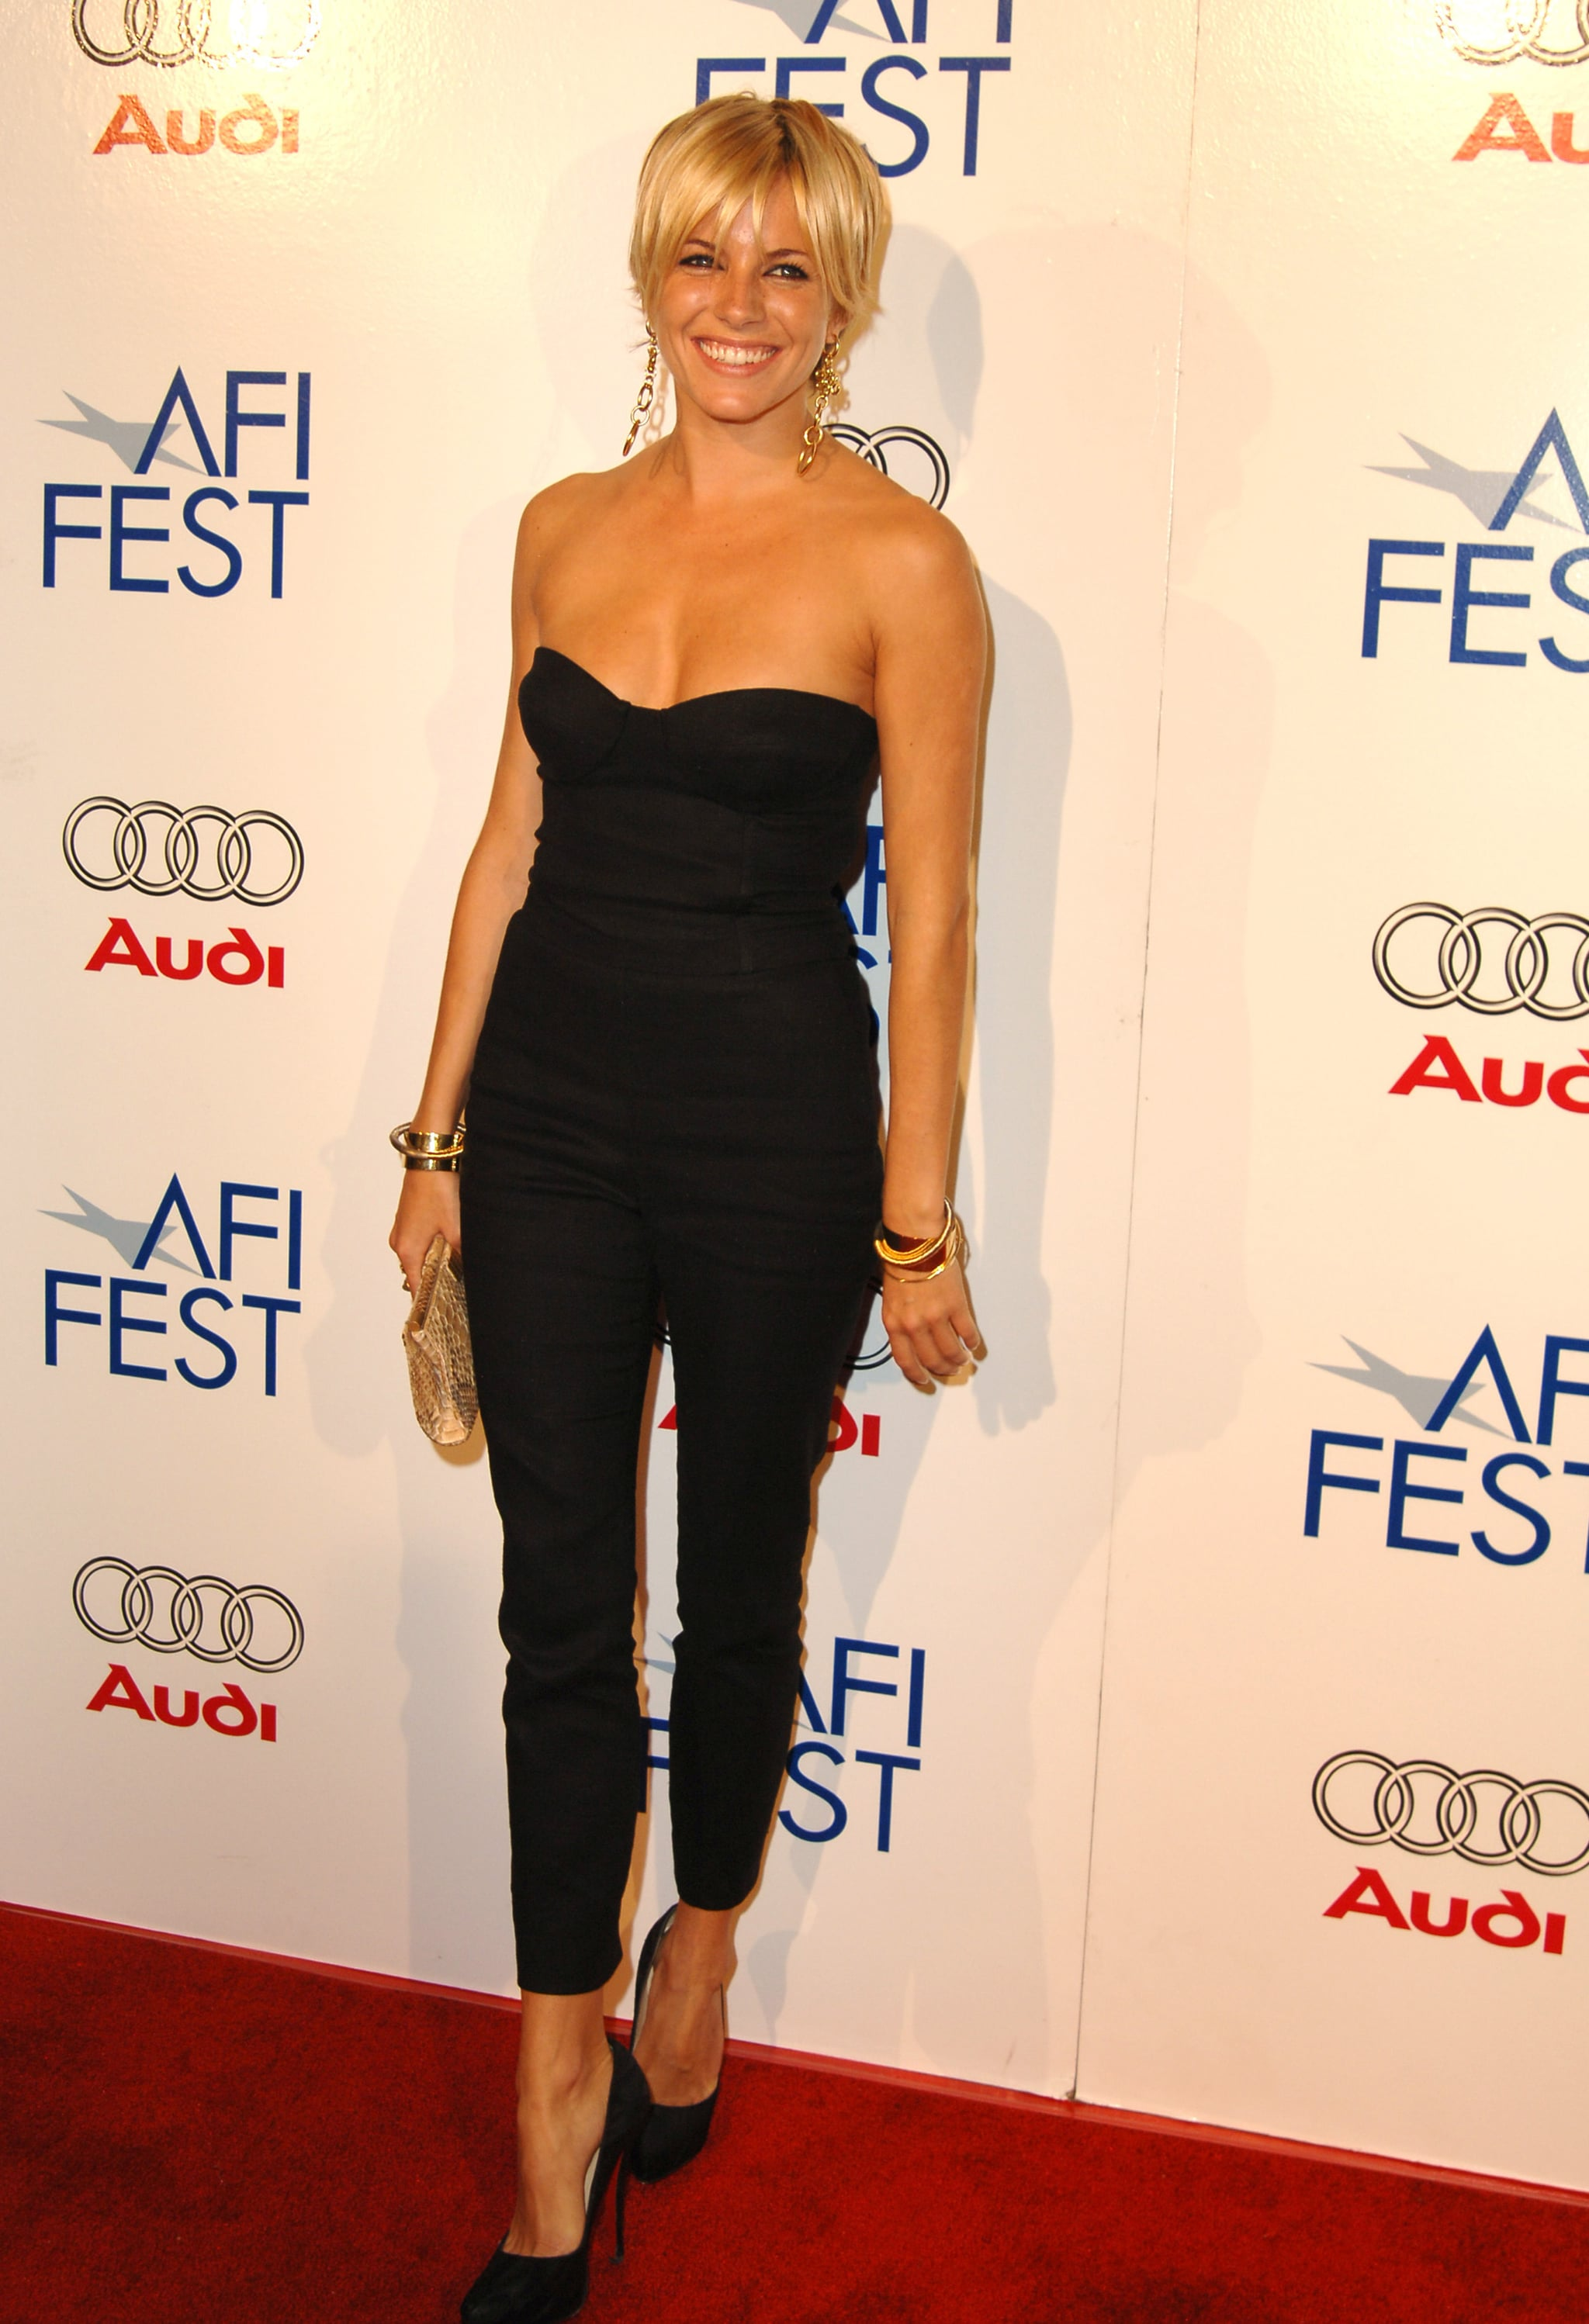 Sienna went with a jumpsuit and shorter hair in 2005.